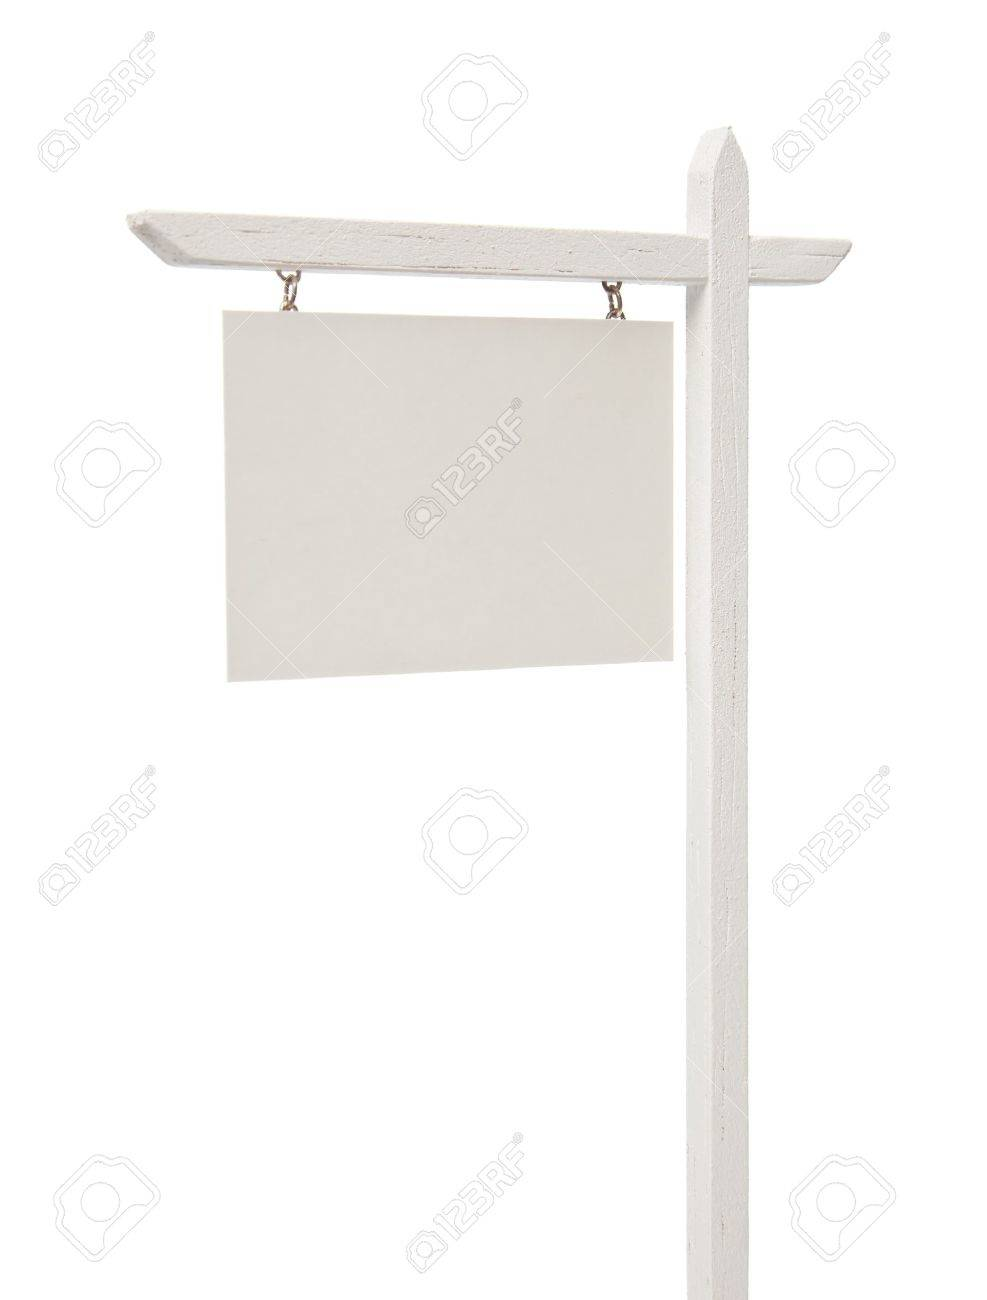 Blank Real Estate Sign Isolated on a White Background. Stock Photo - 9589795